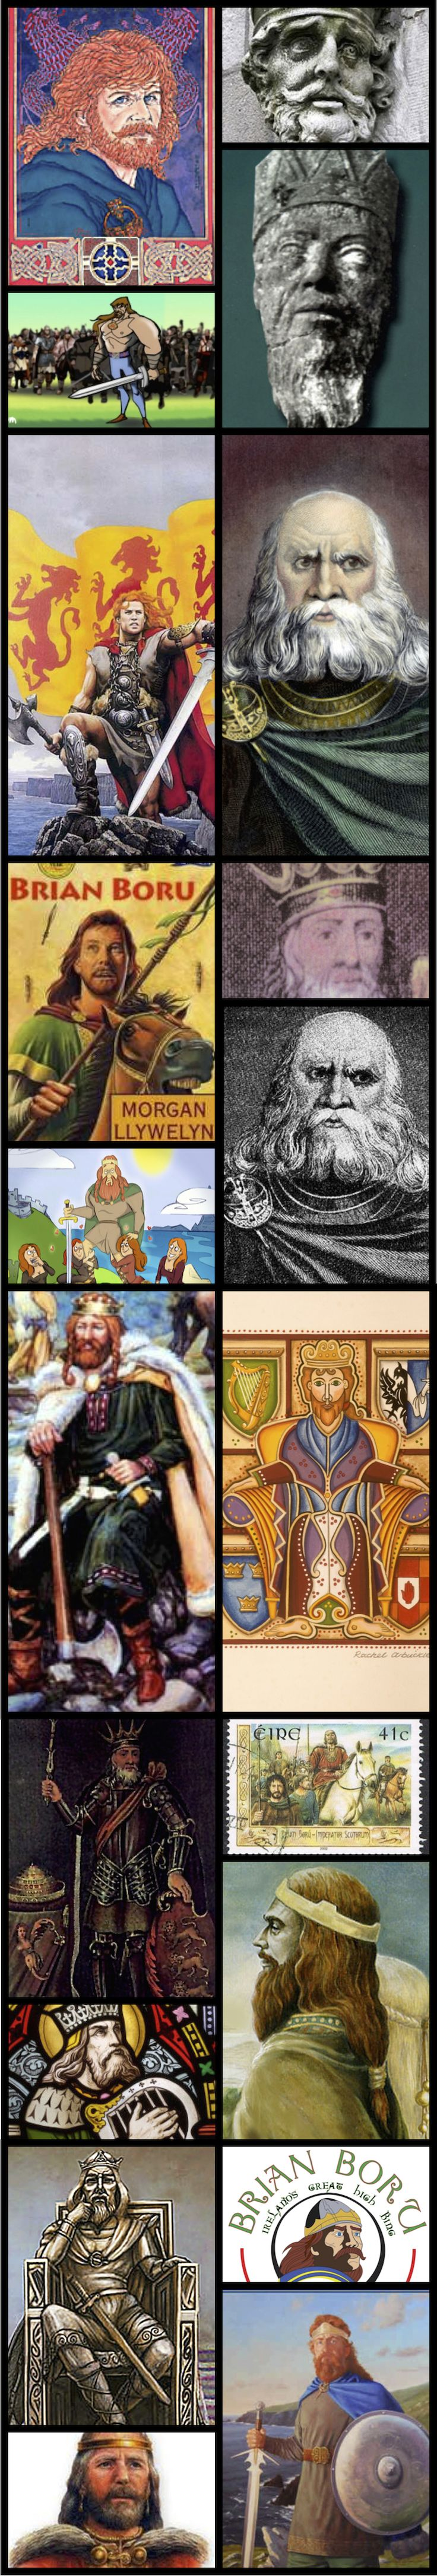 Picturing Ireland's First High King - Brian Boru